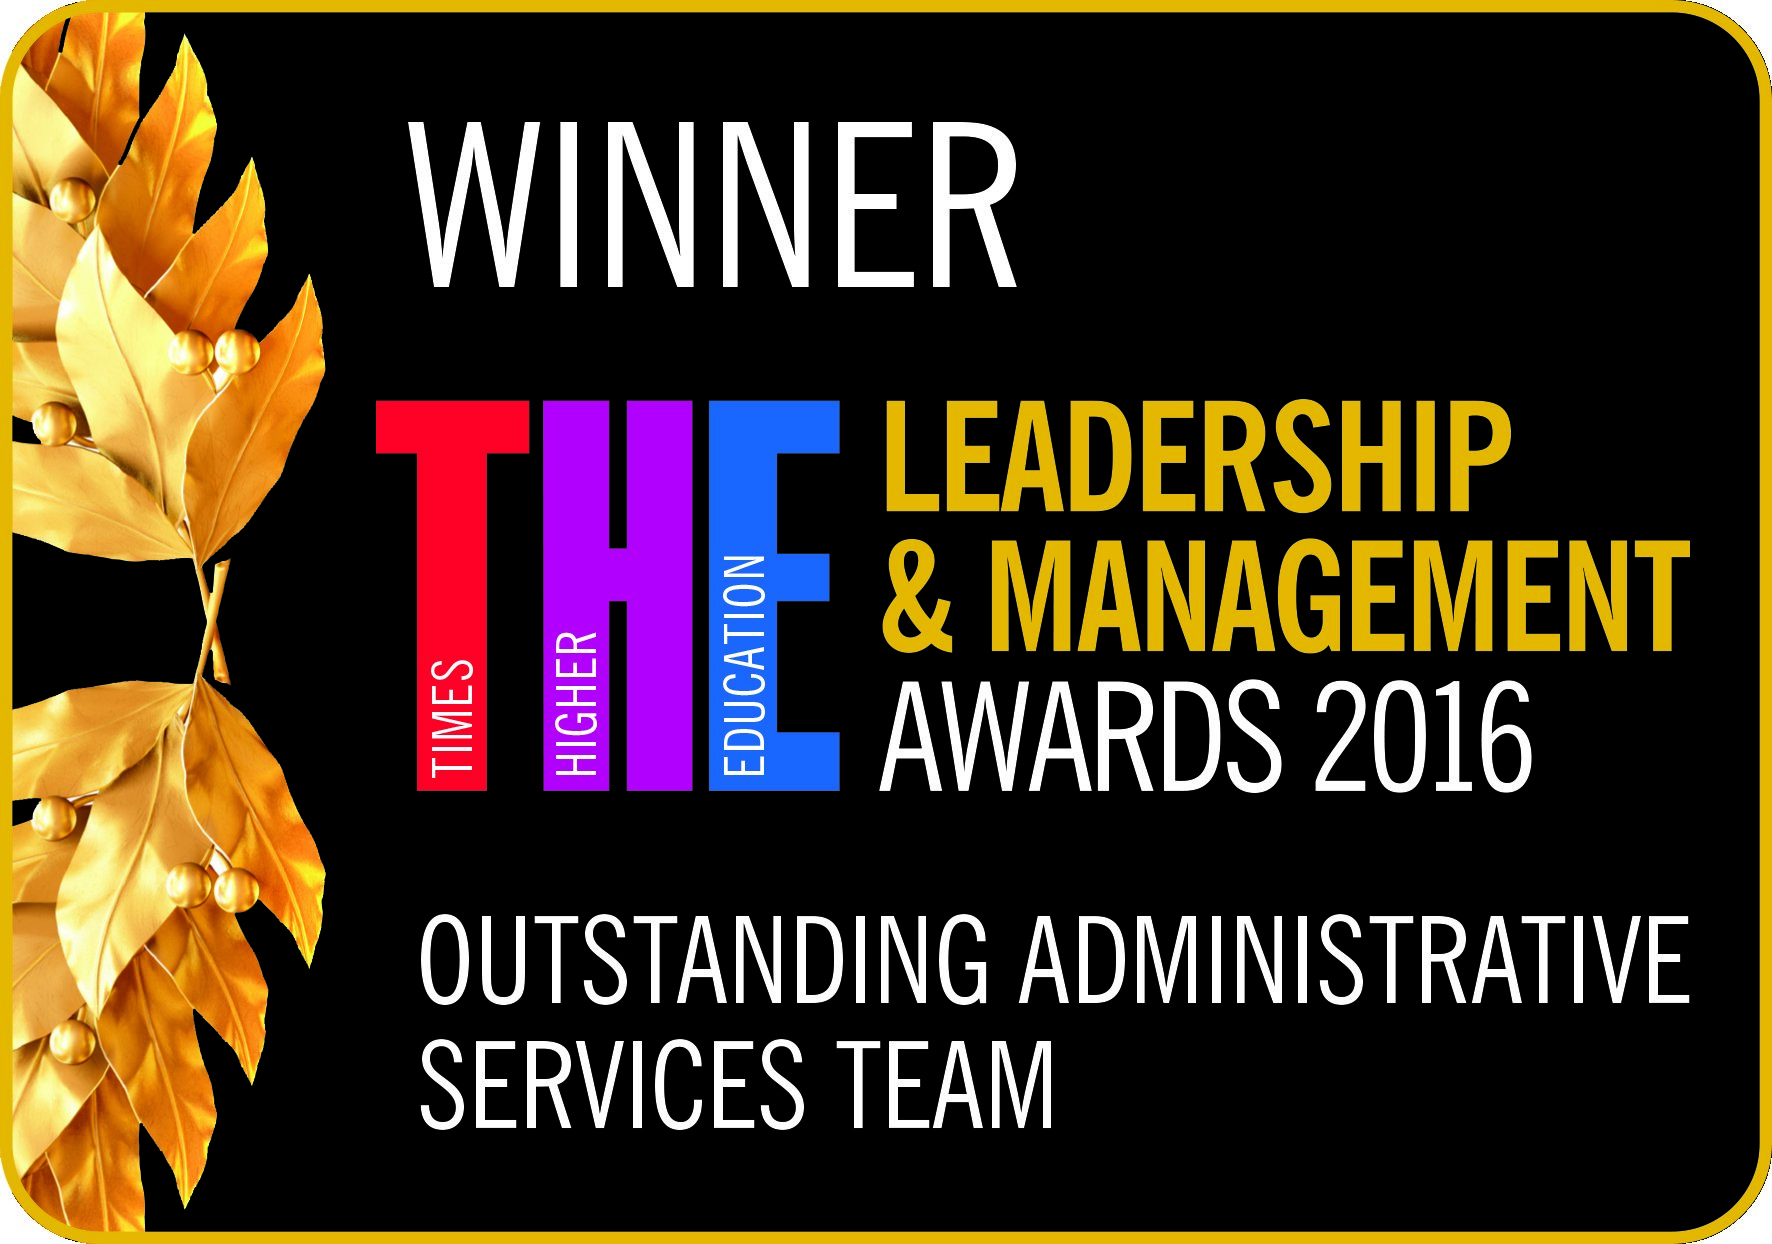 times higher education awards logo which states 'Winner - Times higher education leadership & management awards 2016, outstanding administrative services team